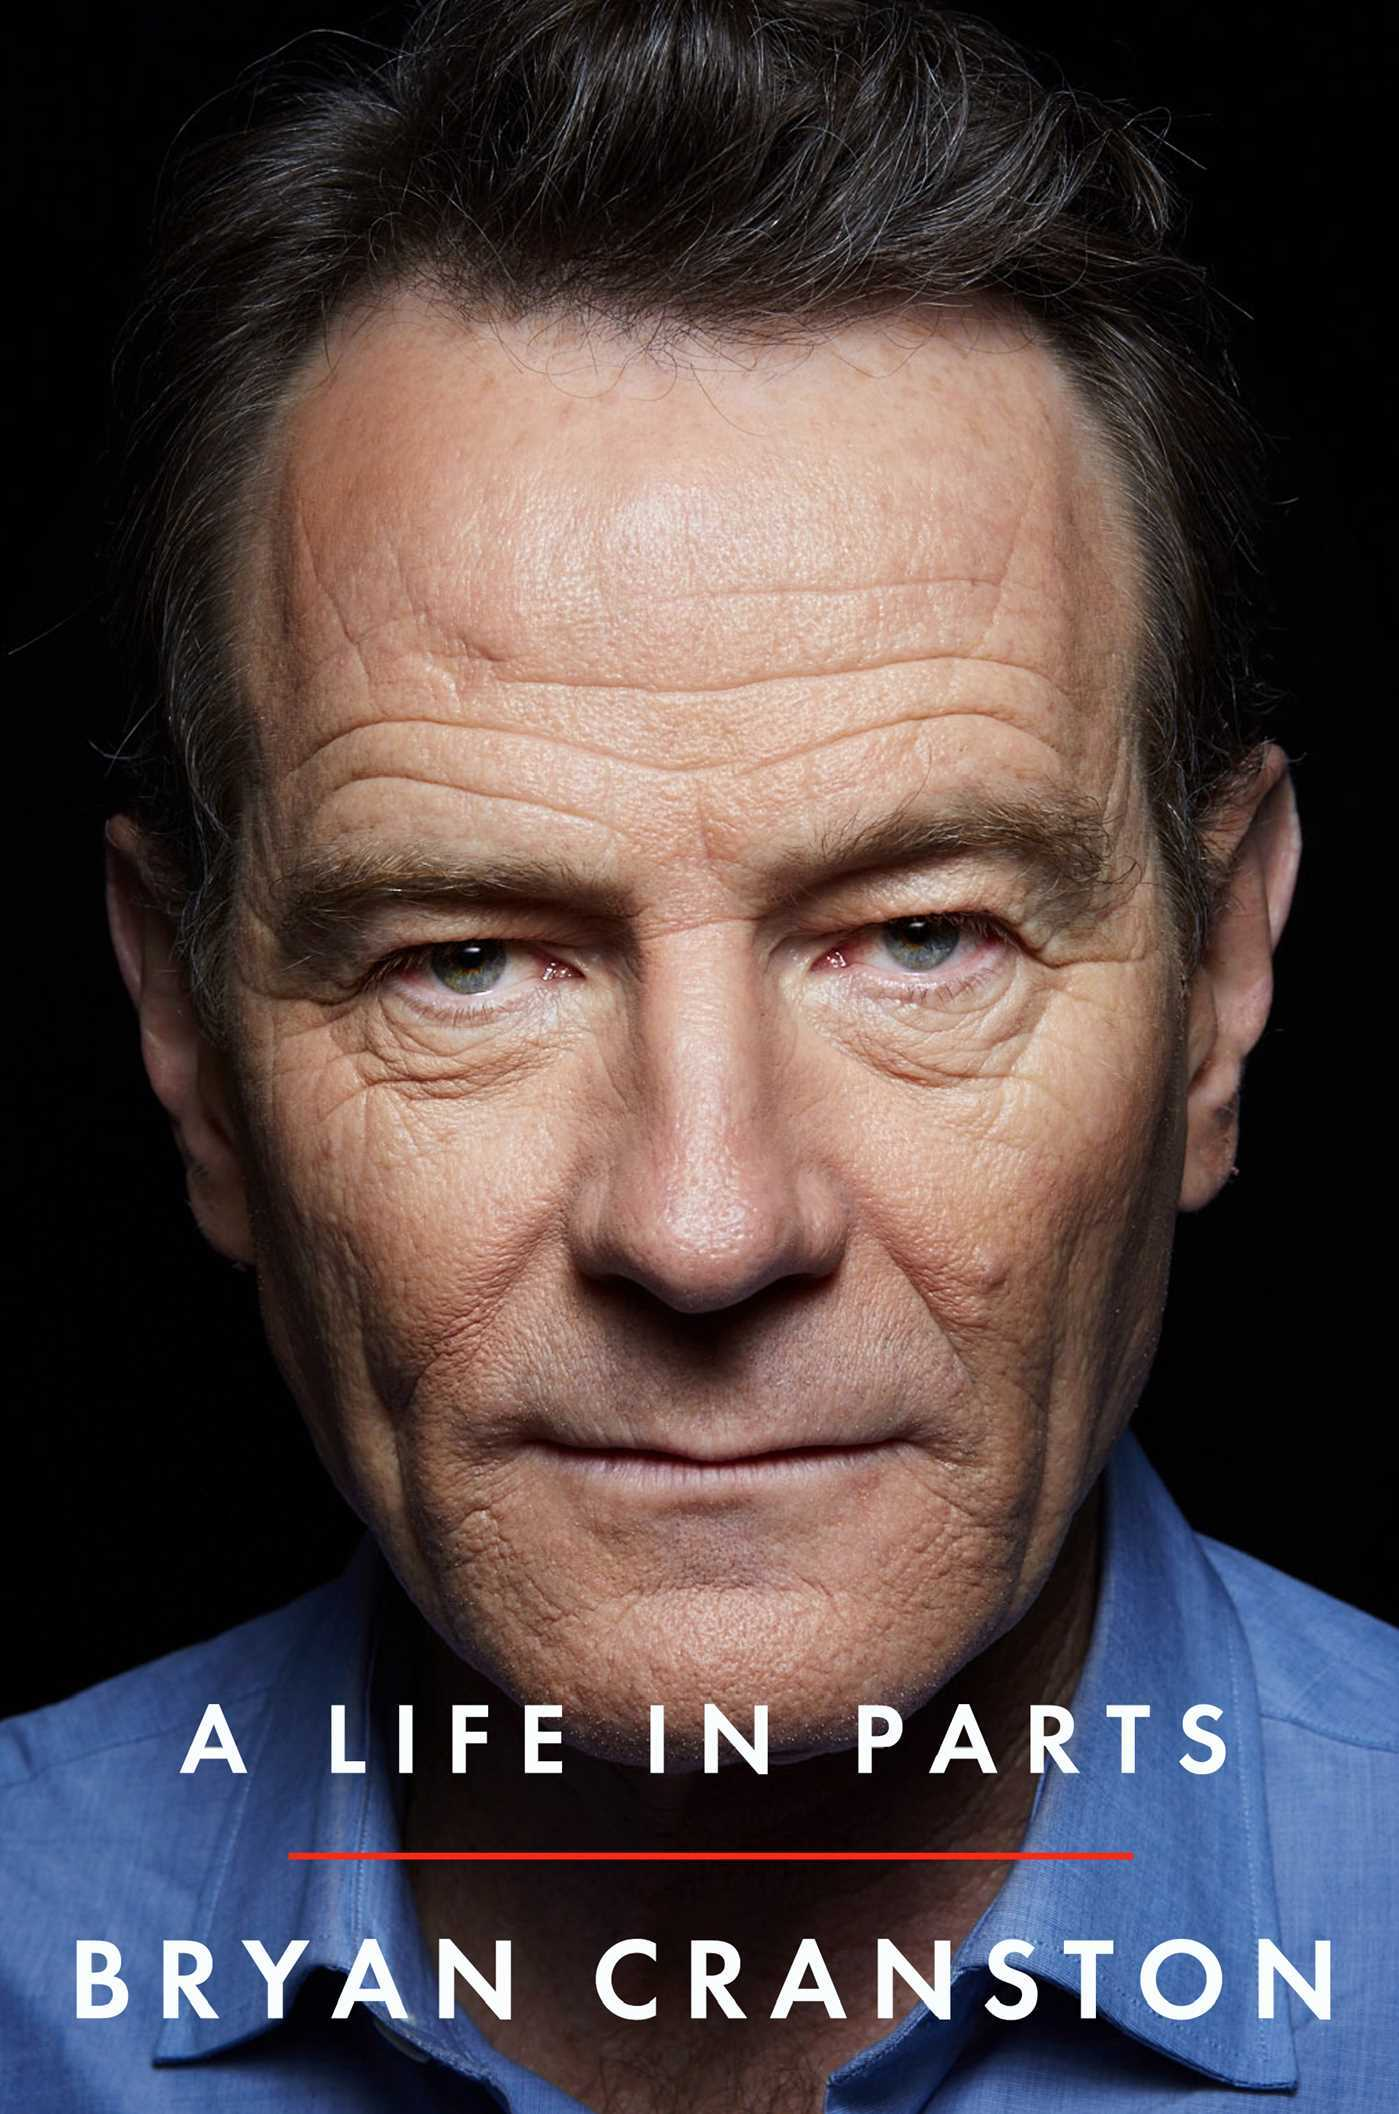 A Life in Parts - Bryan Cranston